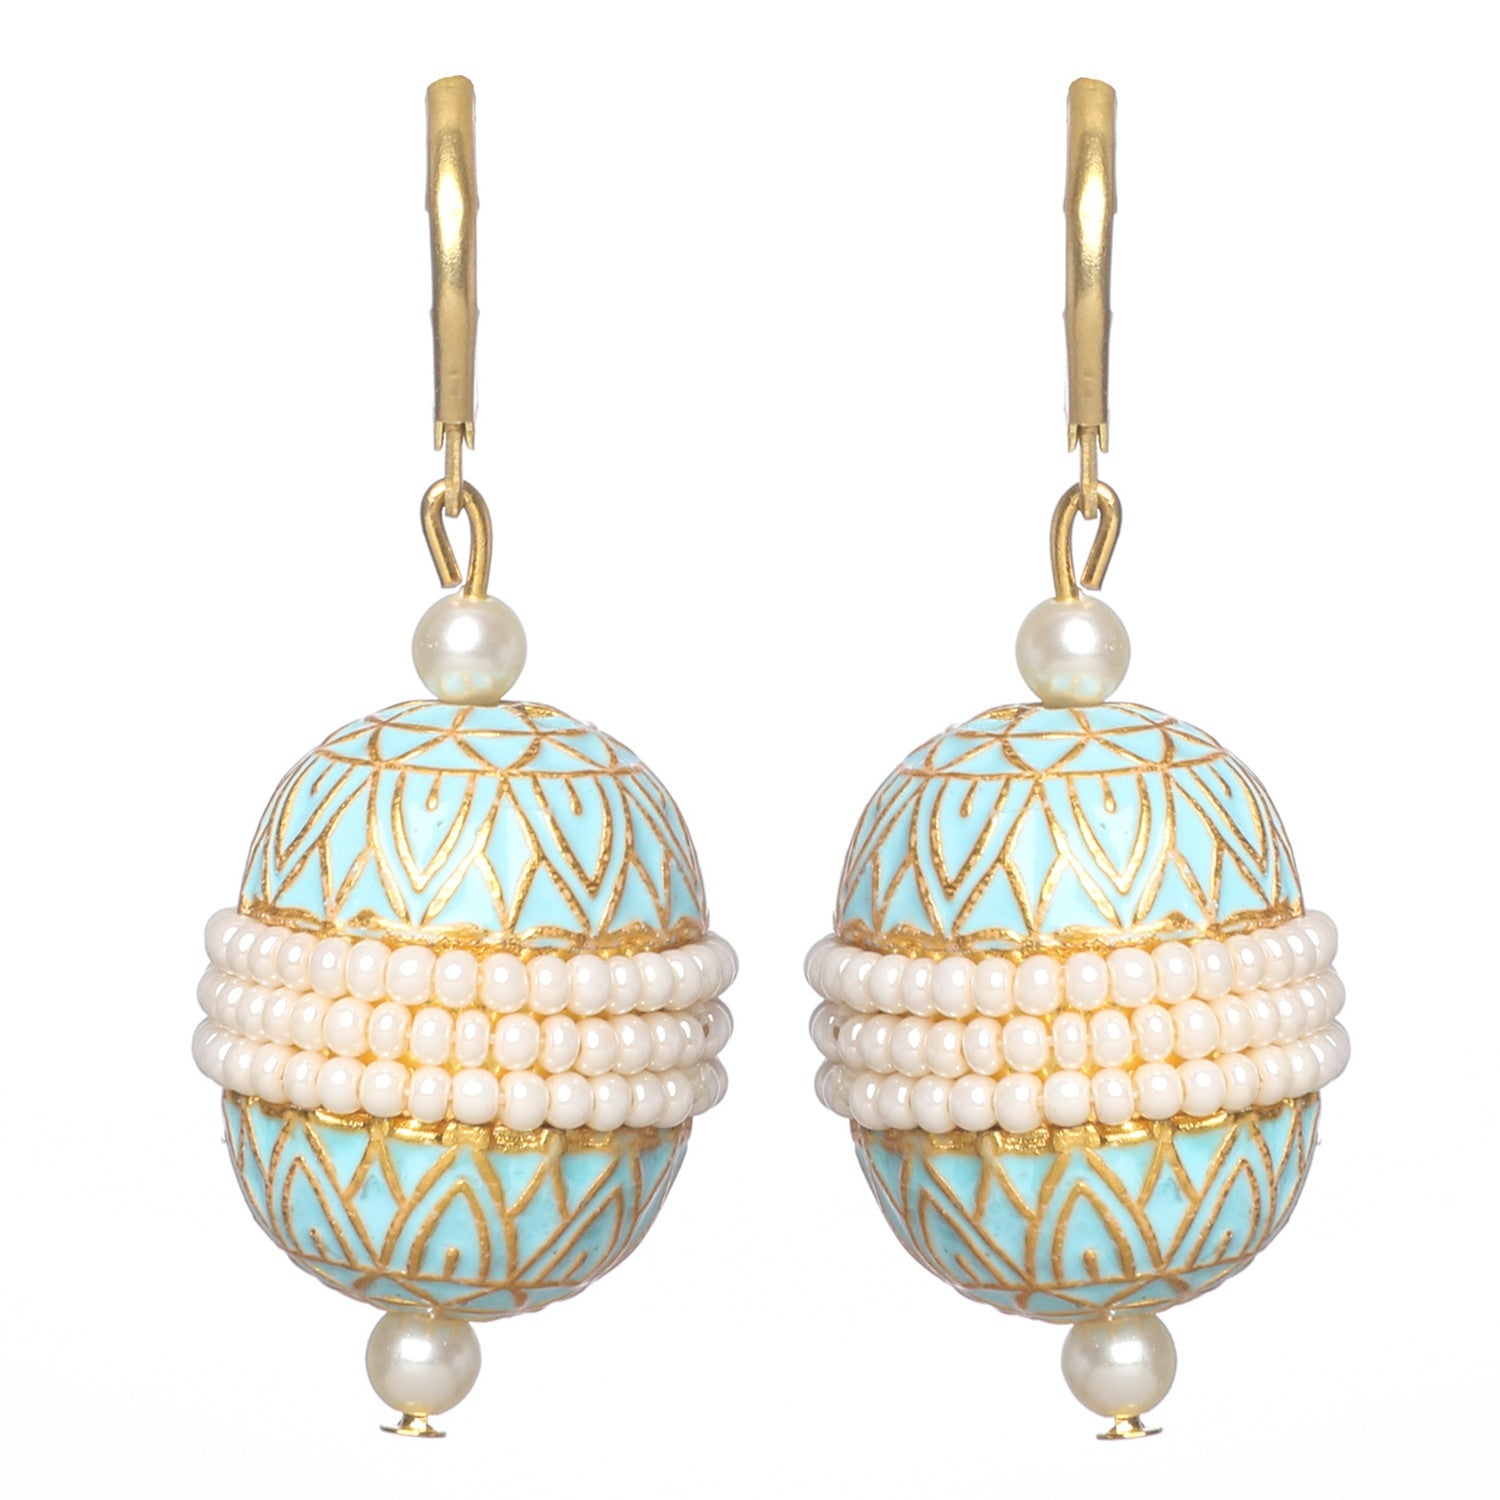 White and blue meenakari and moti earrings